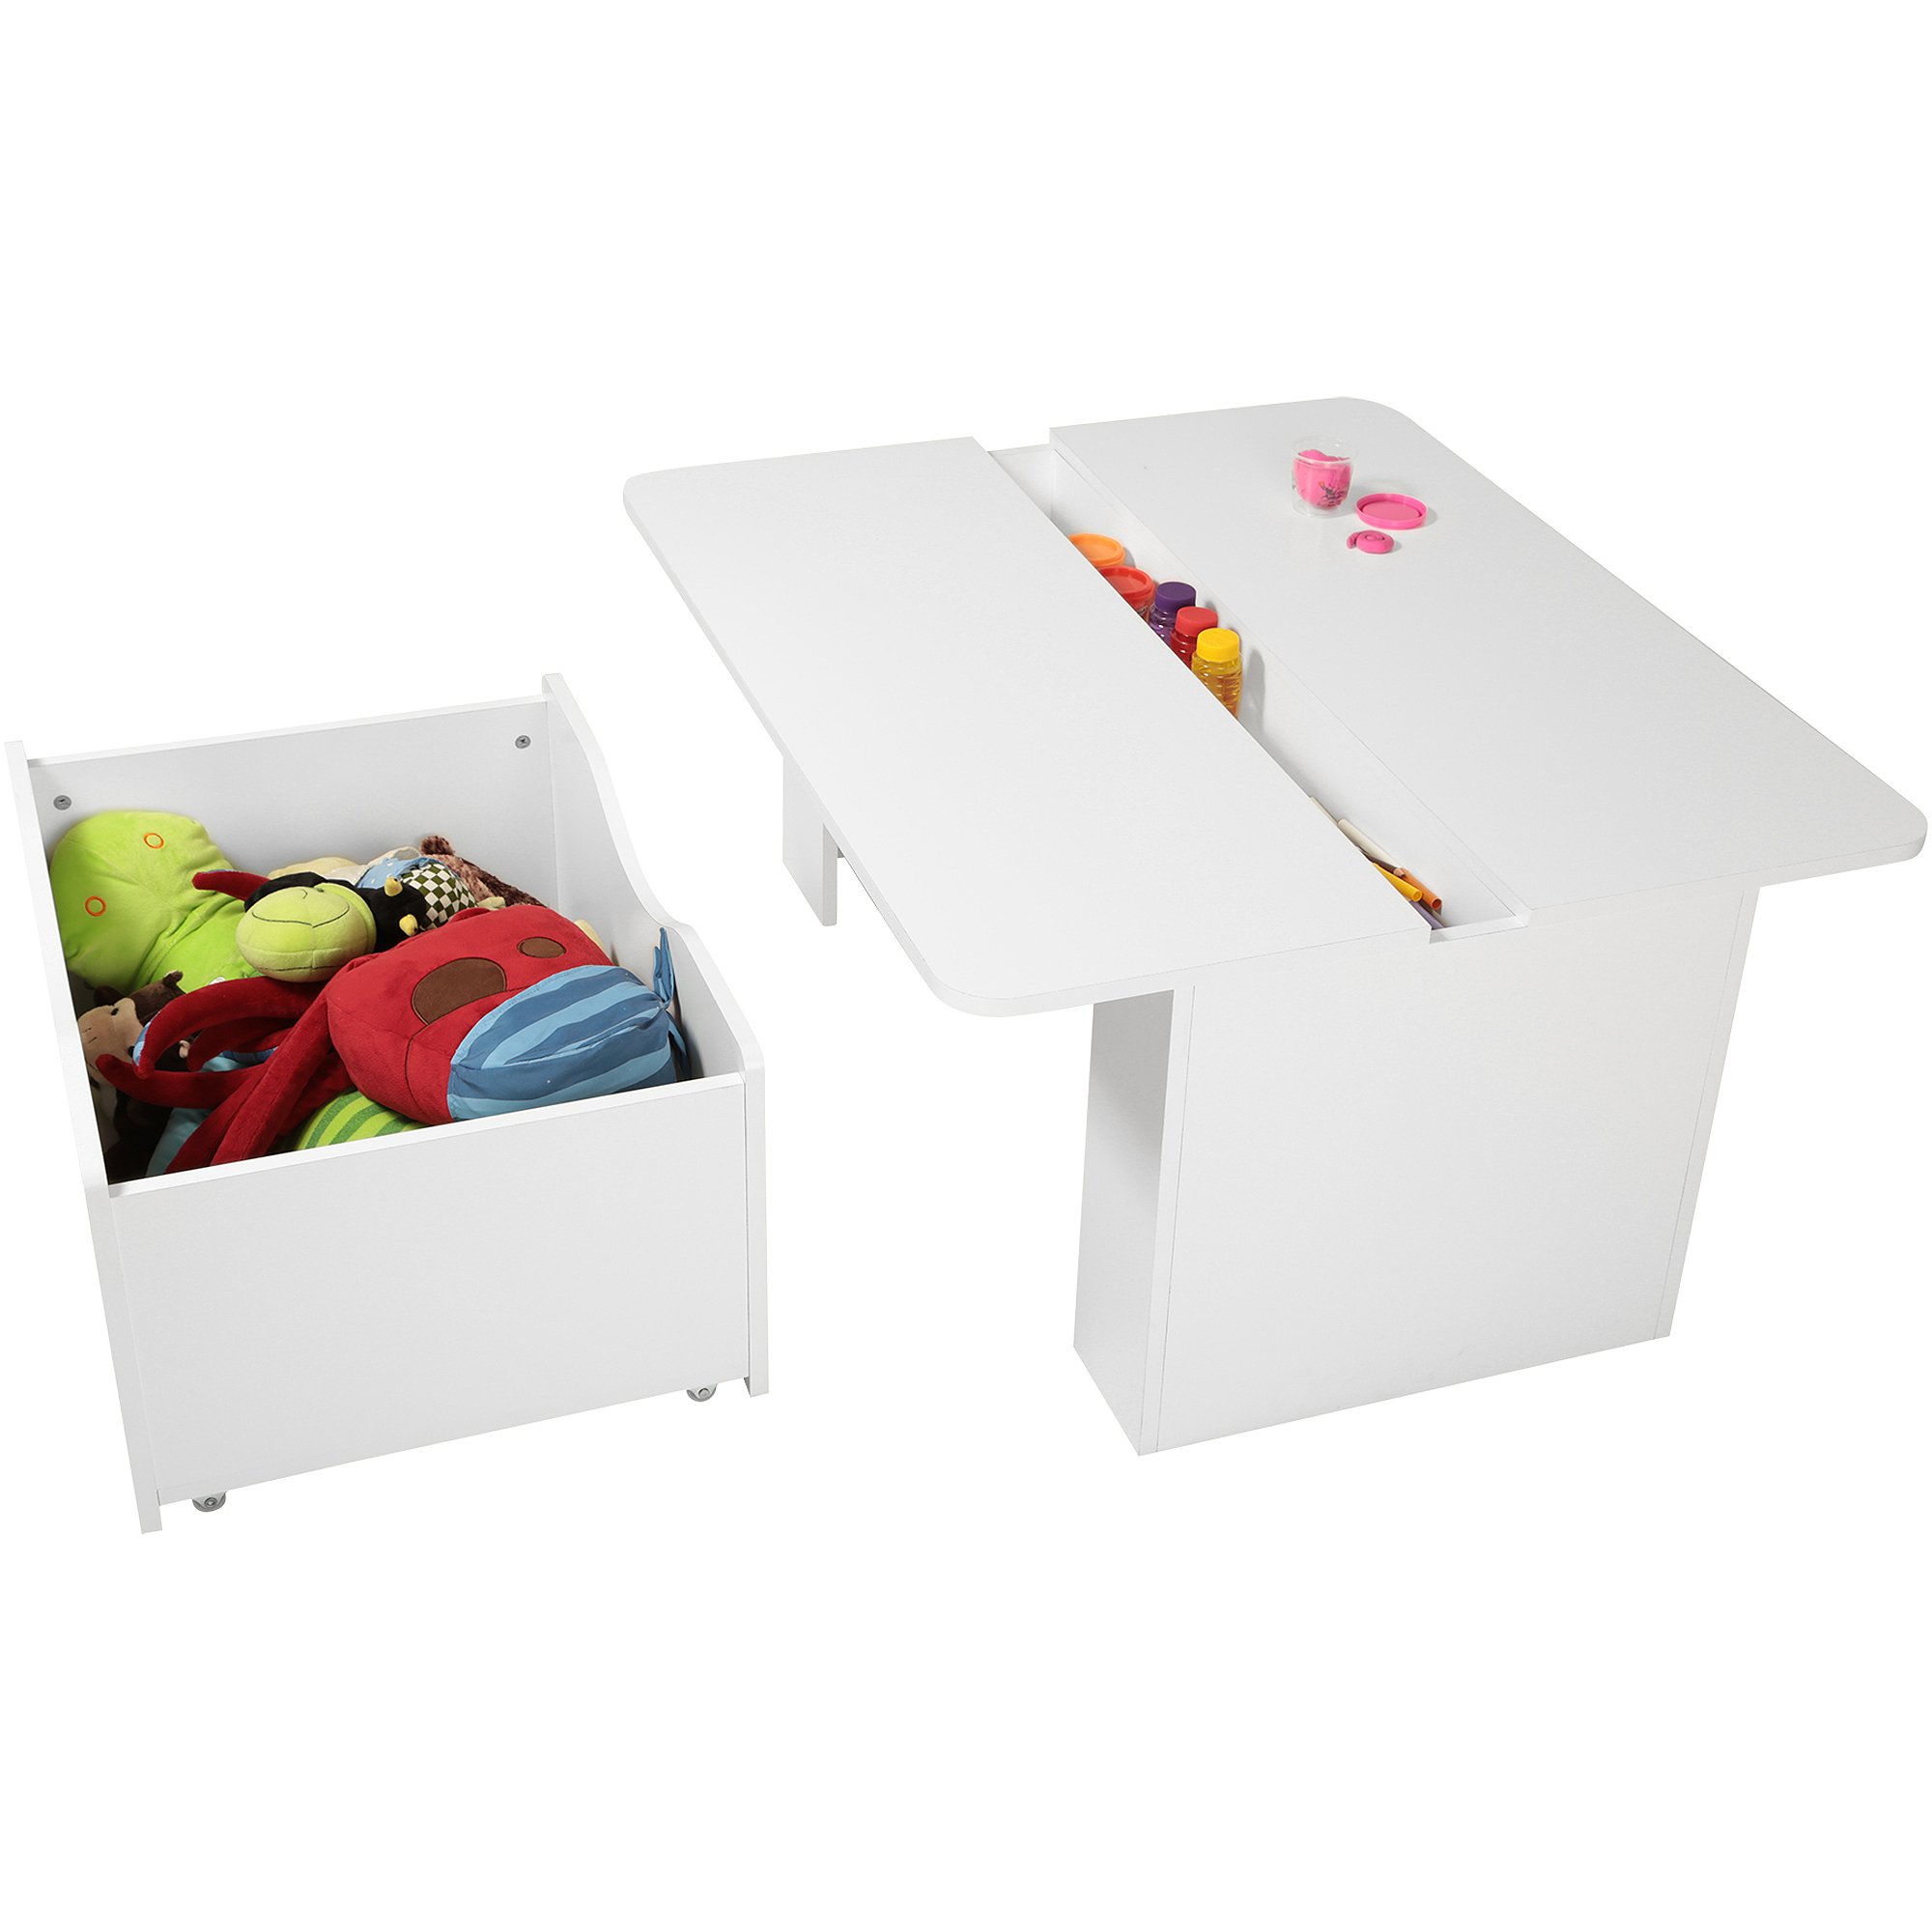 South Shore Crea Kids Activity Table with Toy Box on Wheels, White by South Shore